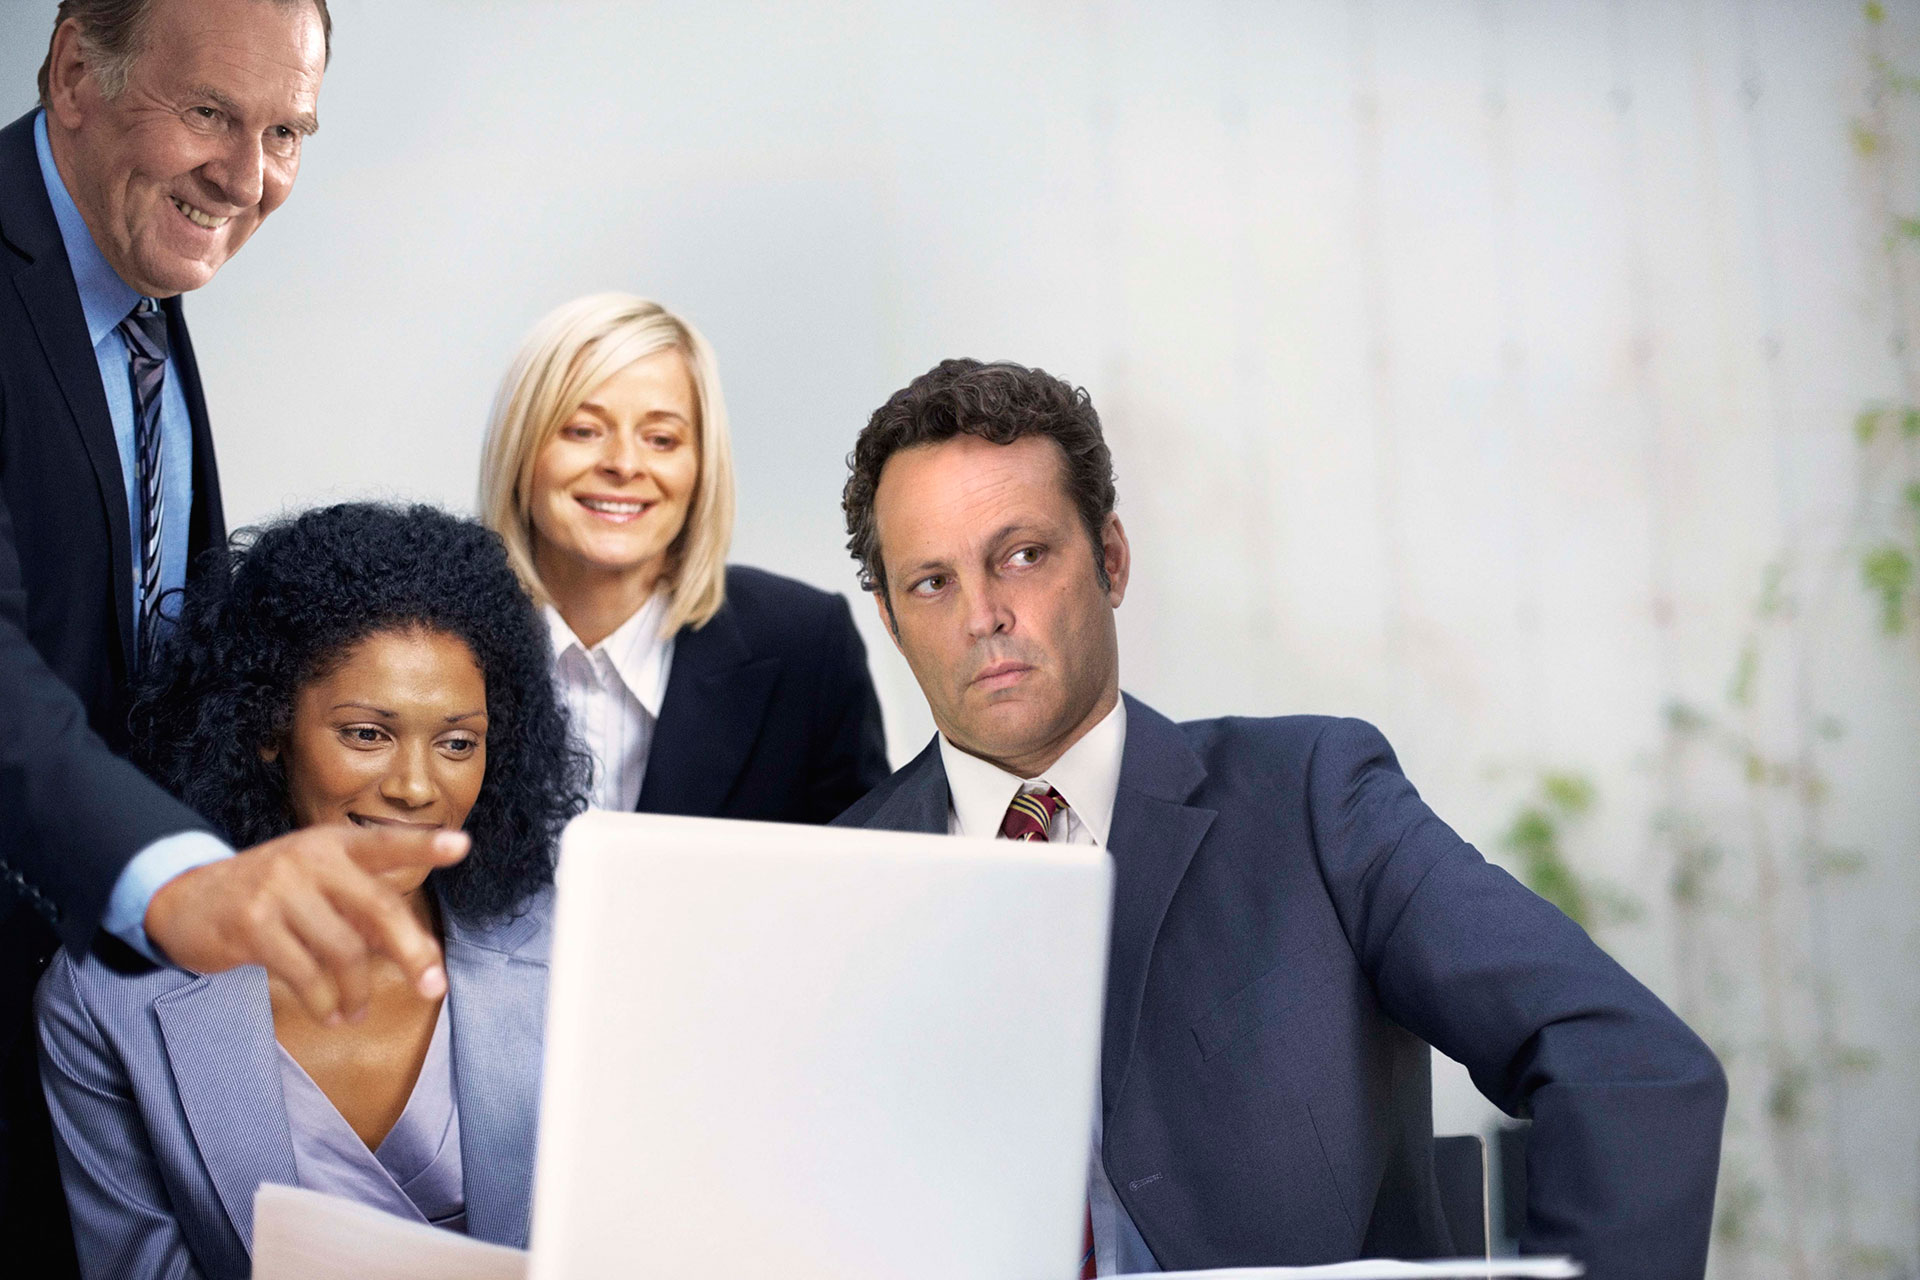 Vince vaughn clipart graphic freeuse stock Vince Vaughn and Co-stars Pose for Idiotic Stock Photos You ... graphic freeuse stock